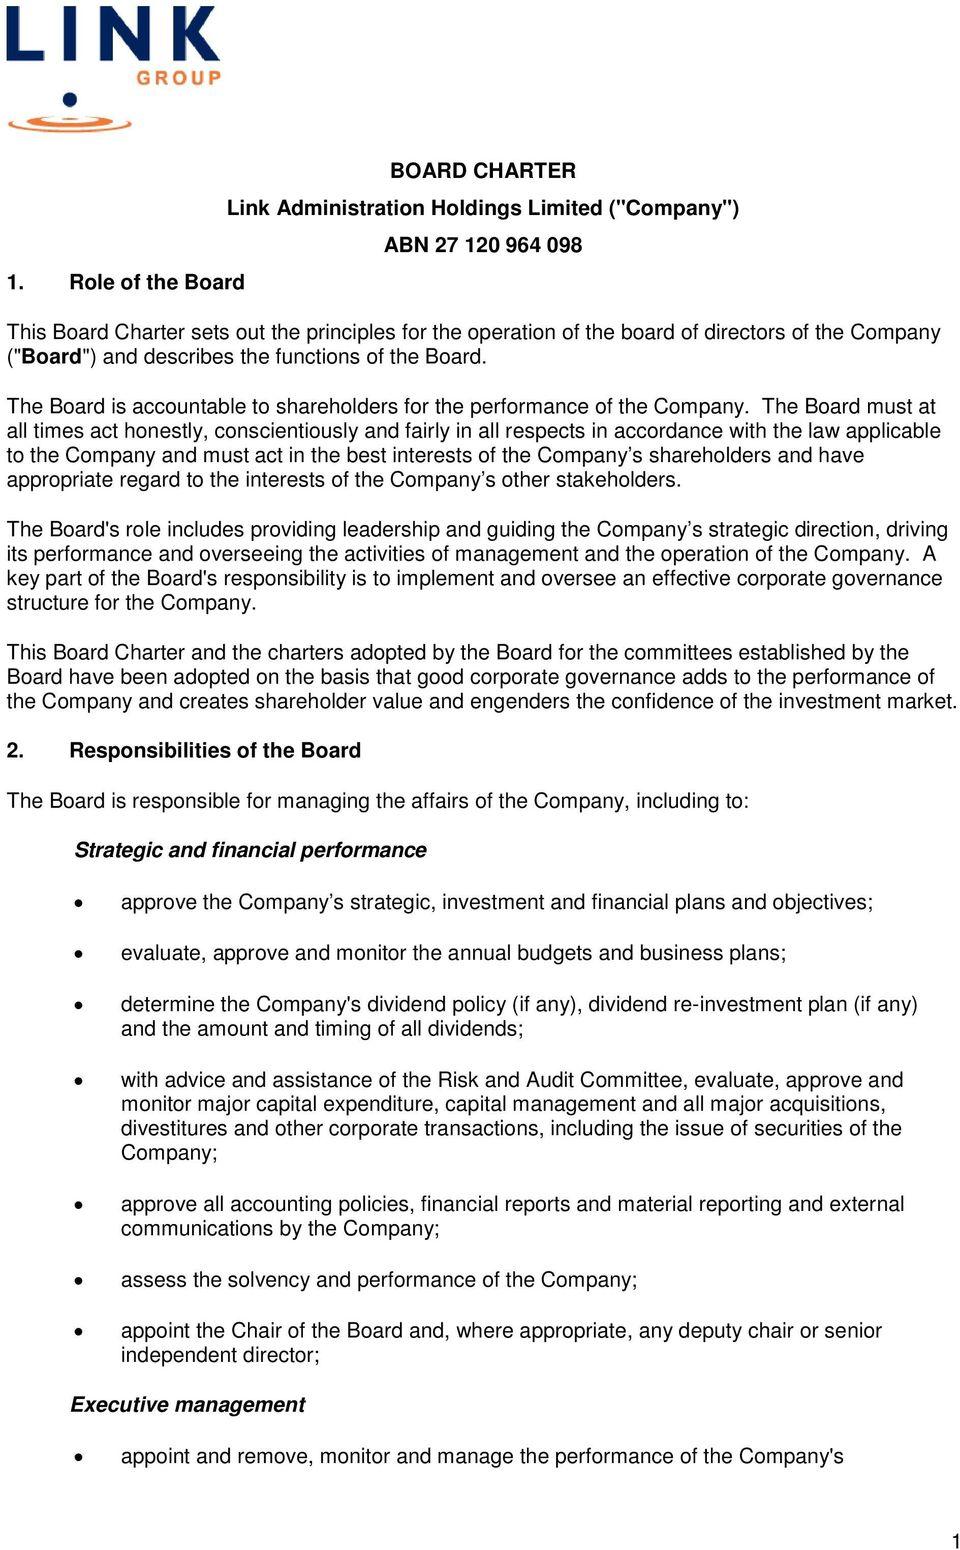 The Board must at all times act honestly, conscientiously and fairly in all respects in accordance with the law applicable to the Company and must act in the best interests of the Company s